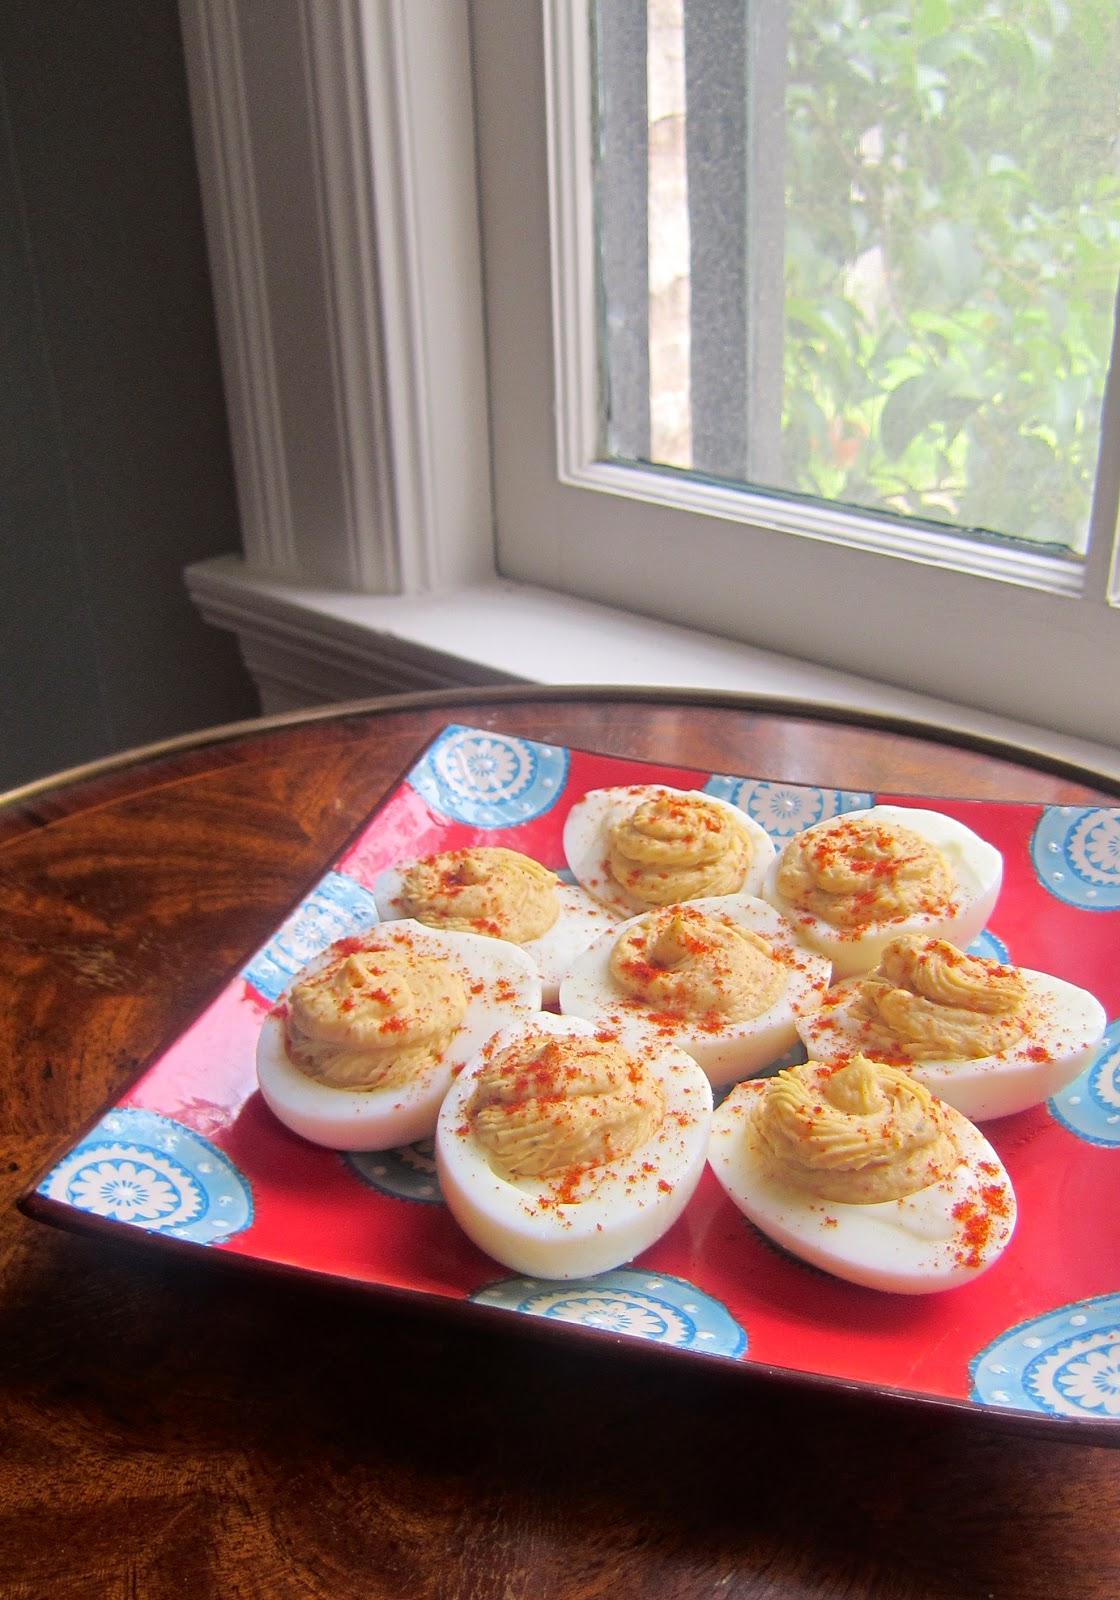 ... every diet - Paleo Weight Loss - Optimal Nutrition: PALEO DEVILED EGGS